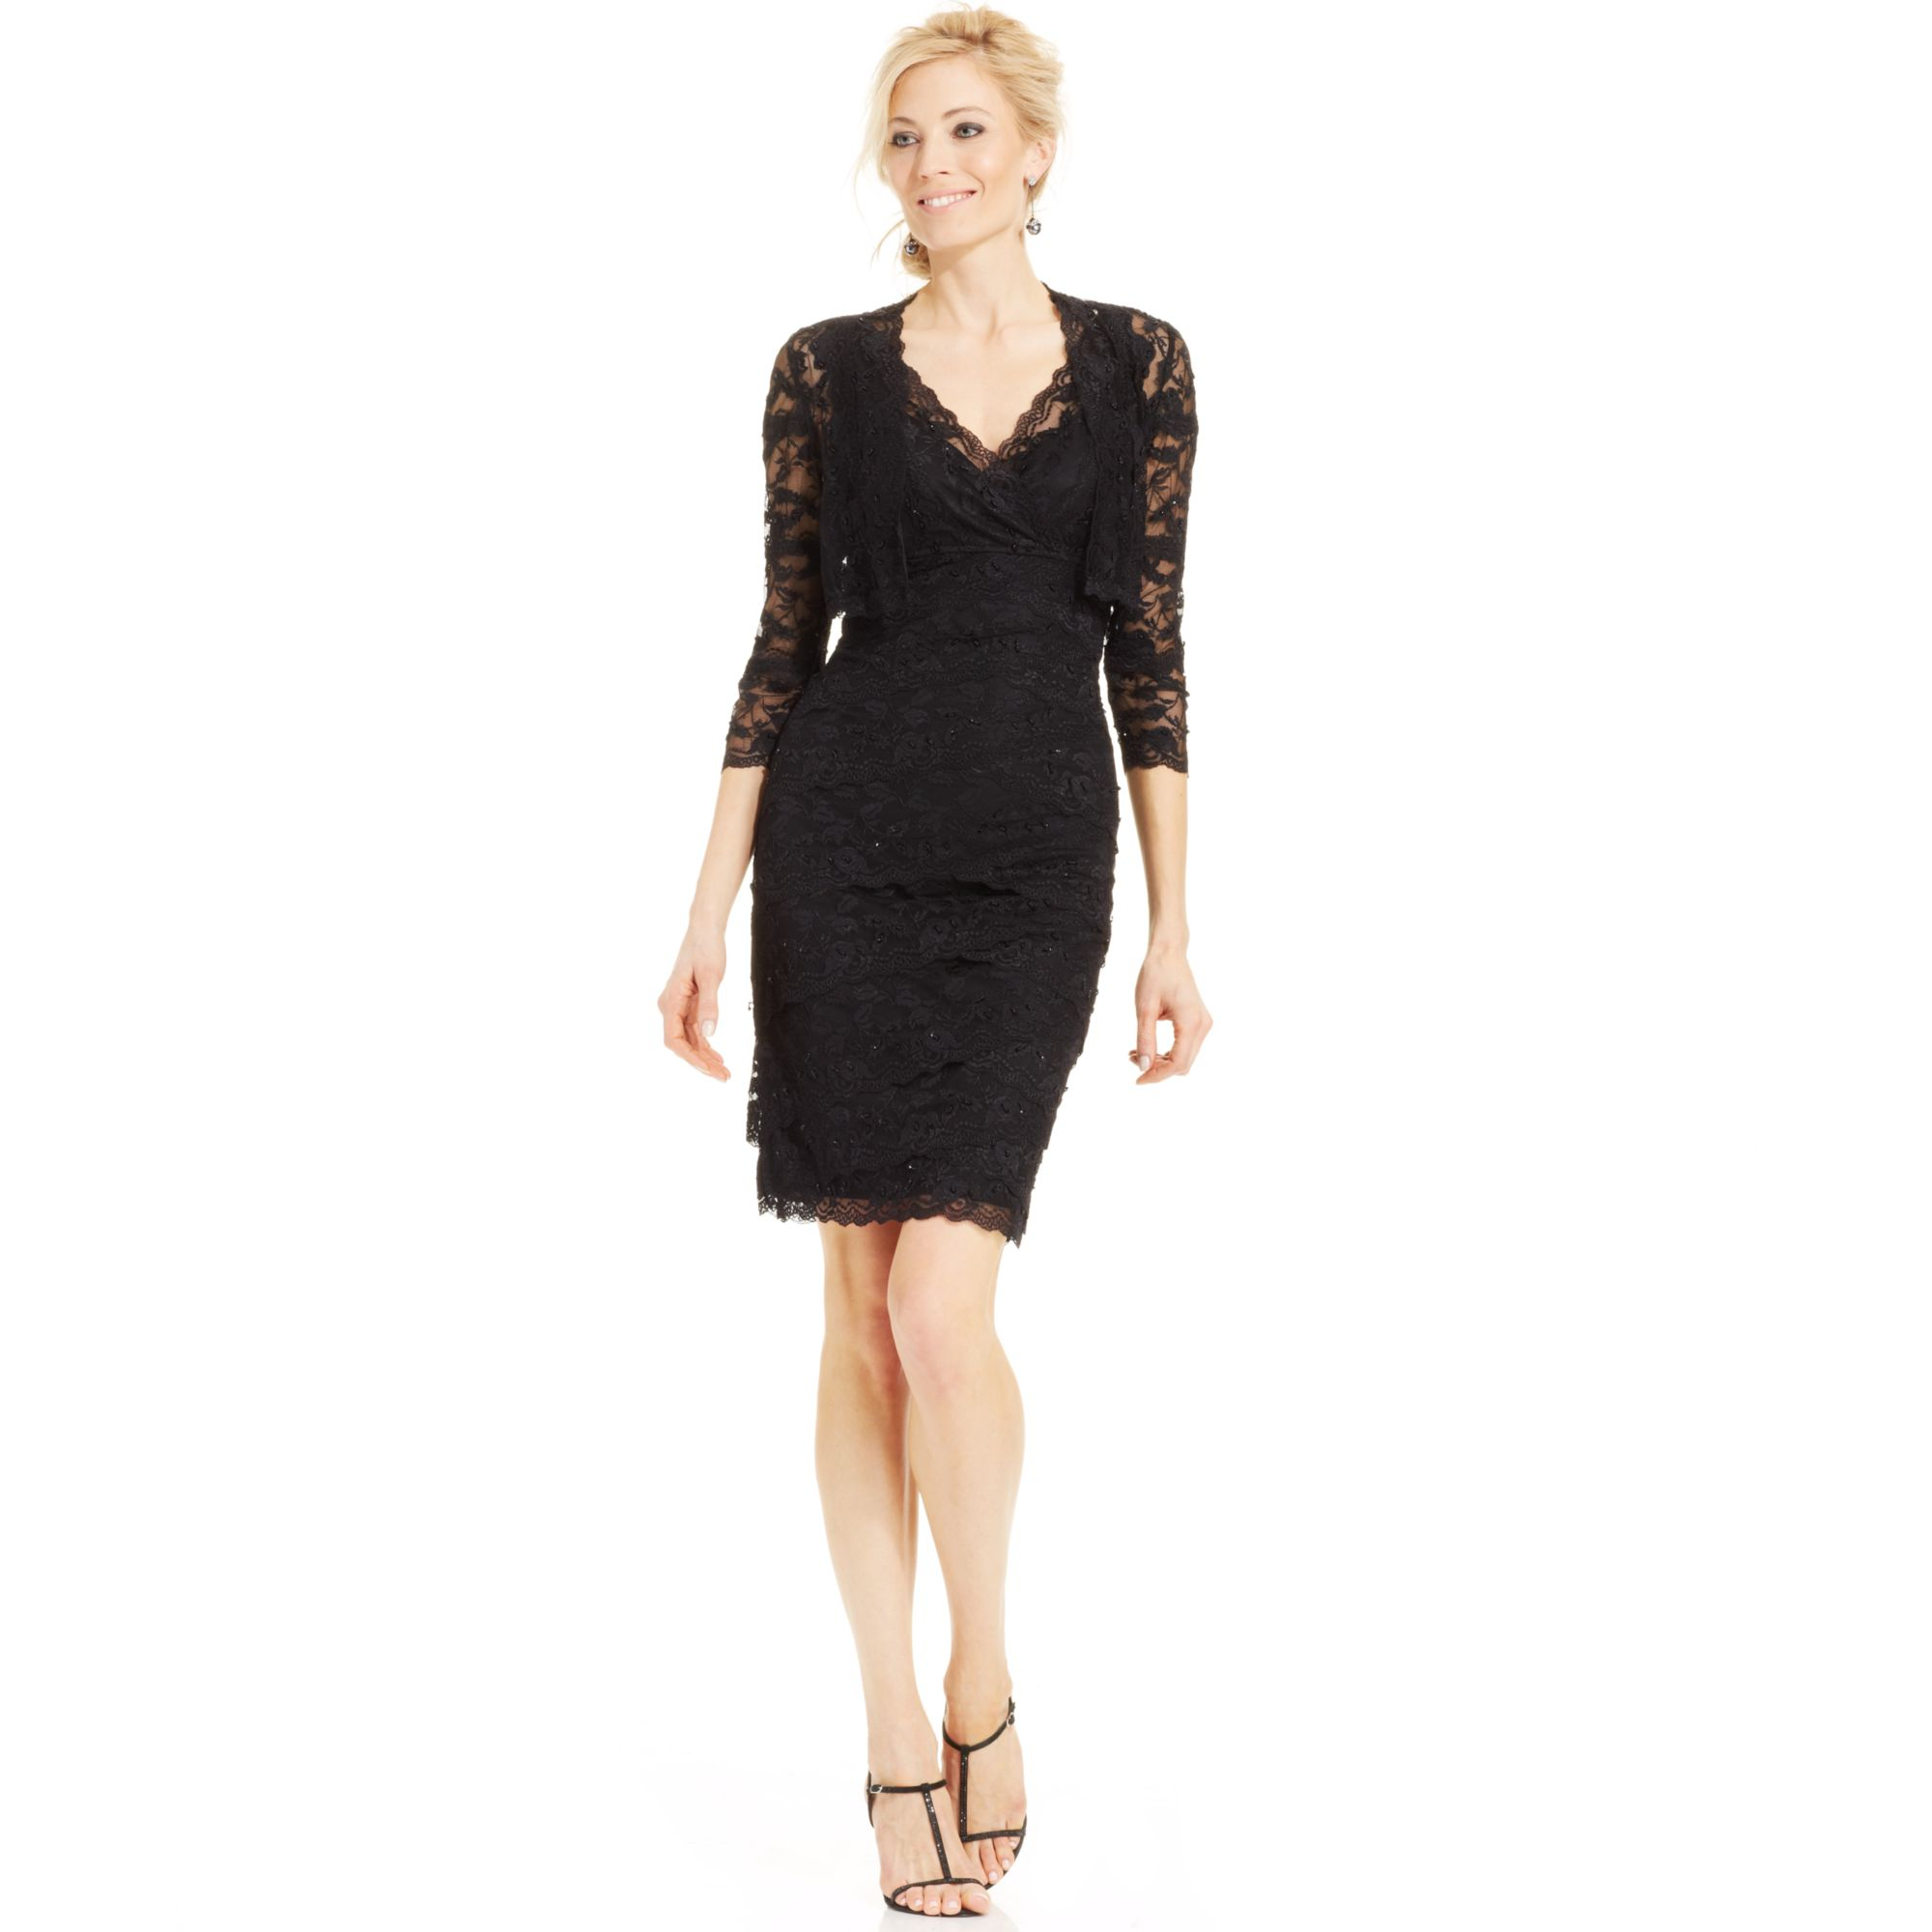 Black lace cocktail dress by marina